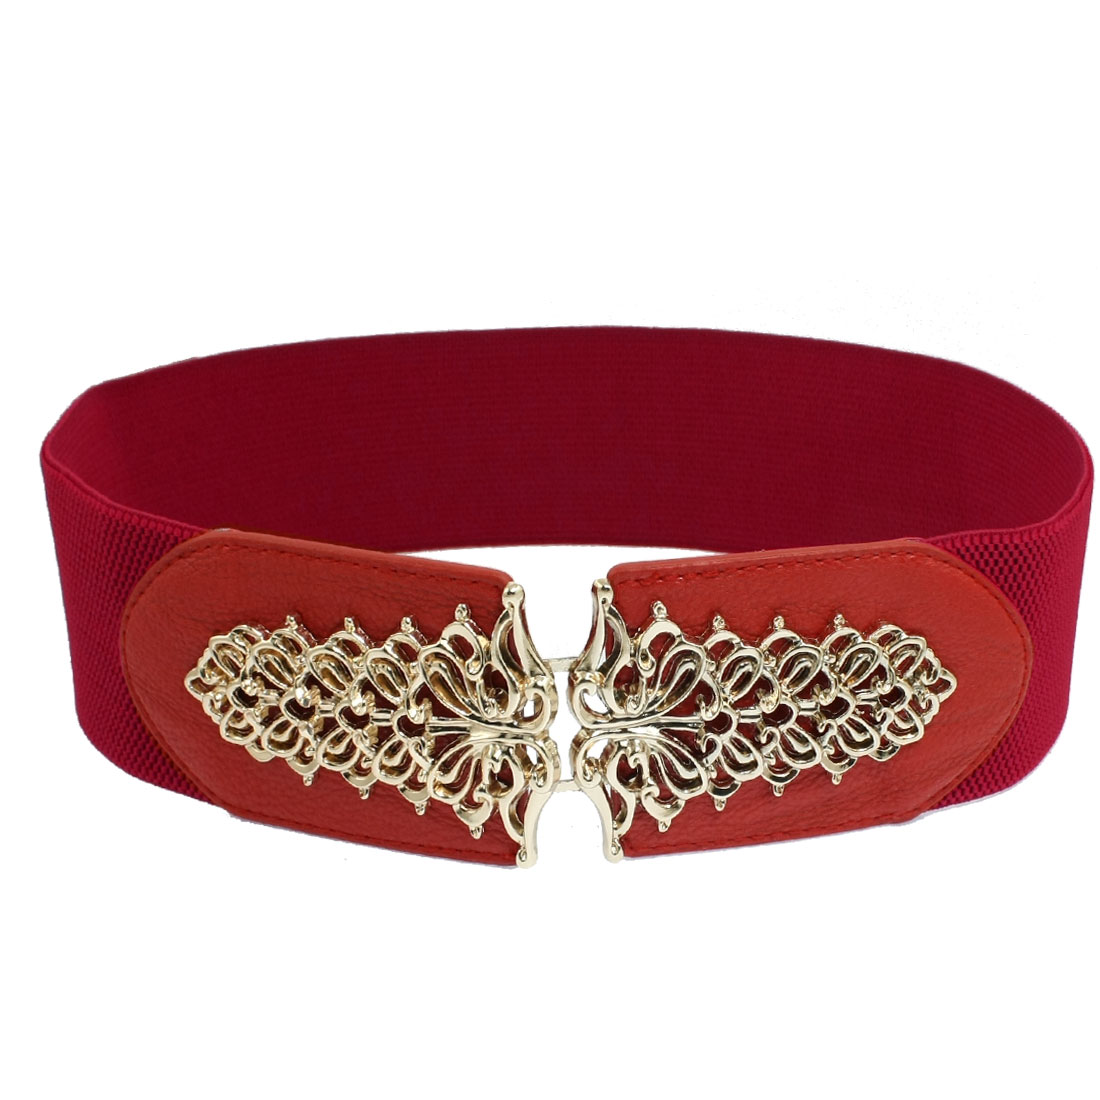 Ladies Gold Tone Hollow Tree Interlocking Buckle Stretchy Waist Belt Red